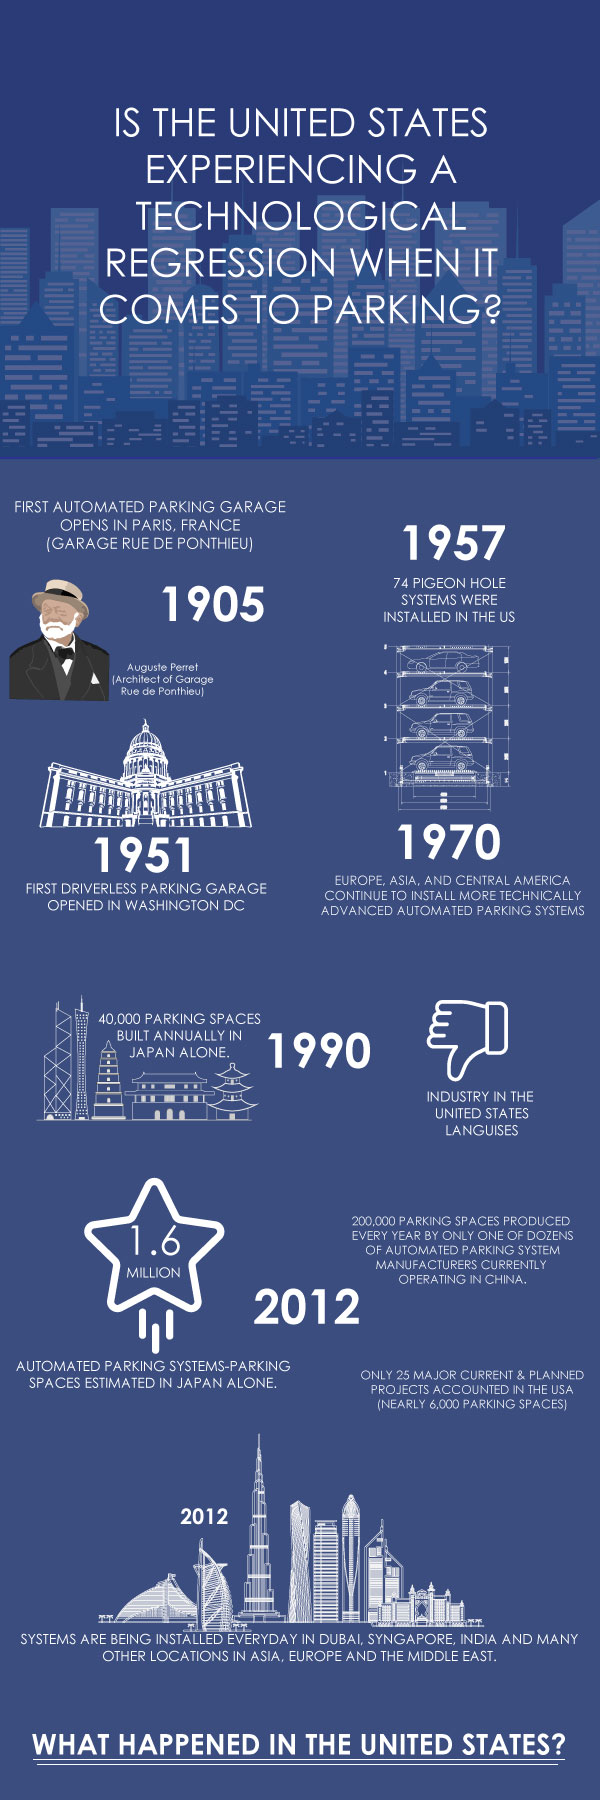 Infographic-Is-The-US-Experiencing-a-Technological-Regression